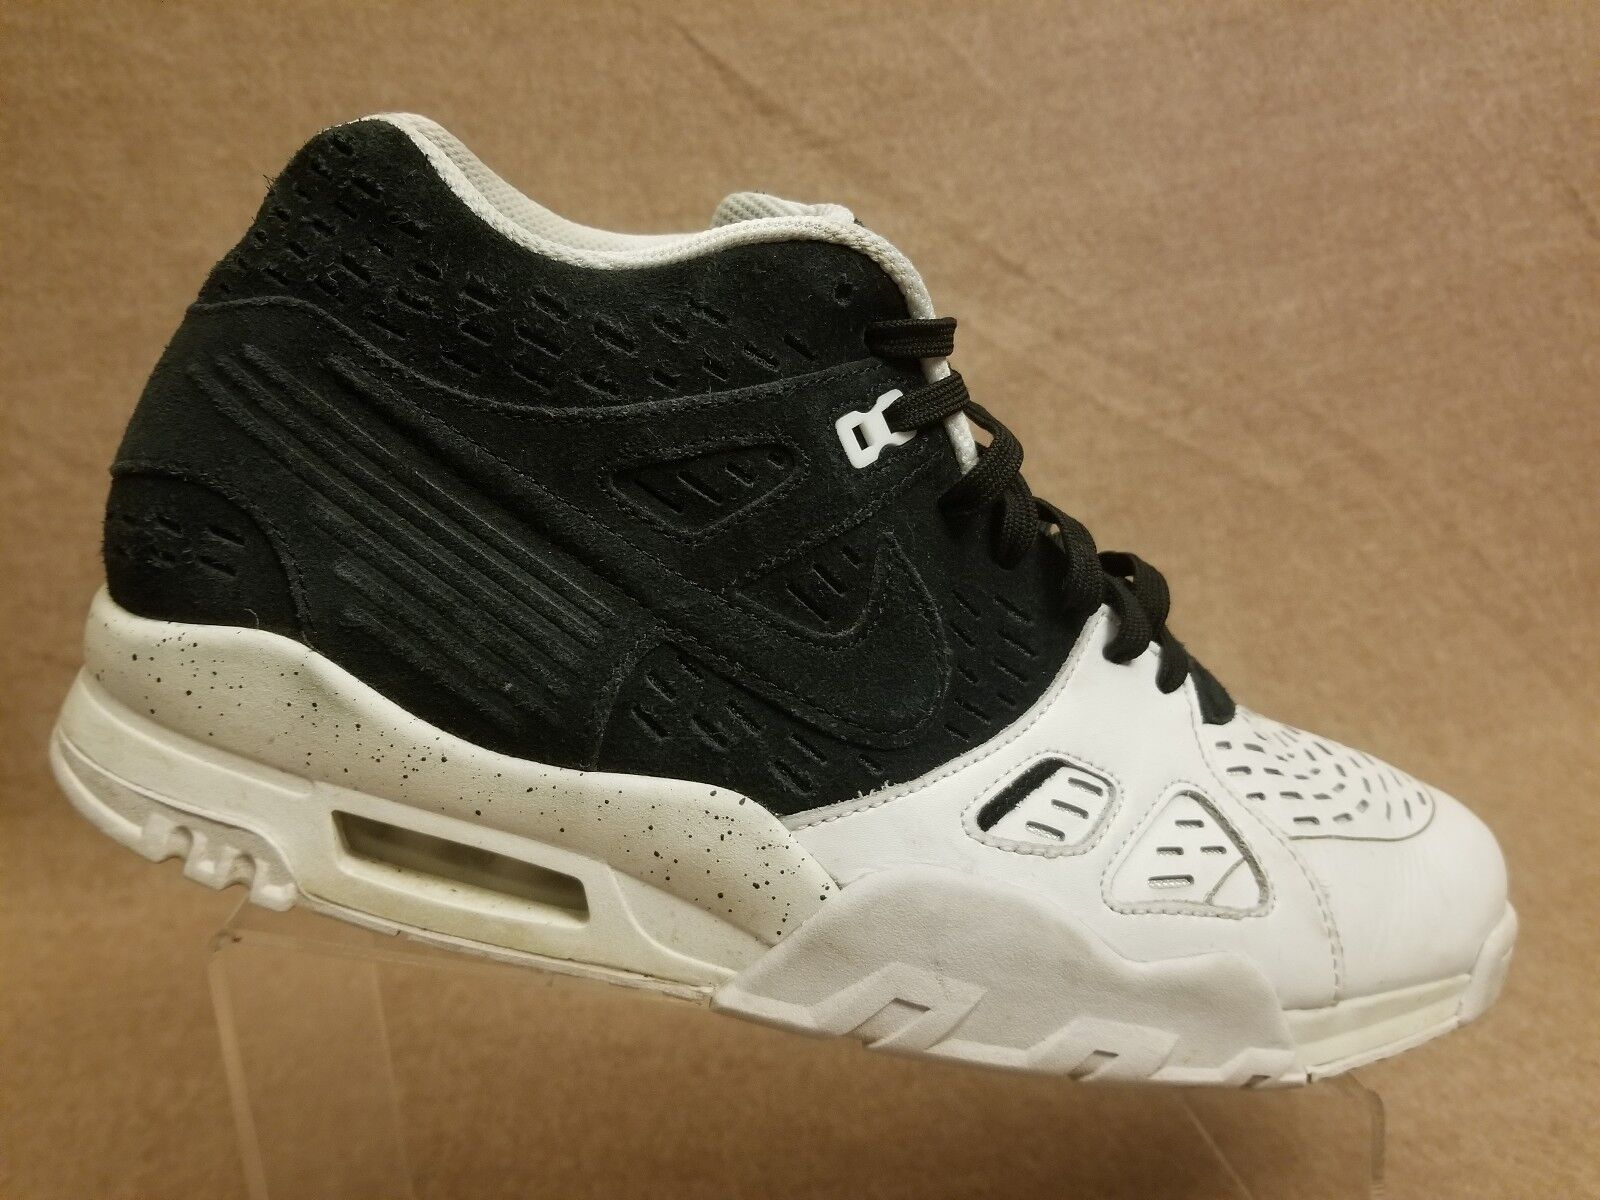 Nike Air Trainer III LE 815758-003 Men Black White Sport Athletic Shoes Size 13